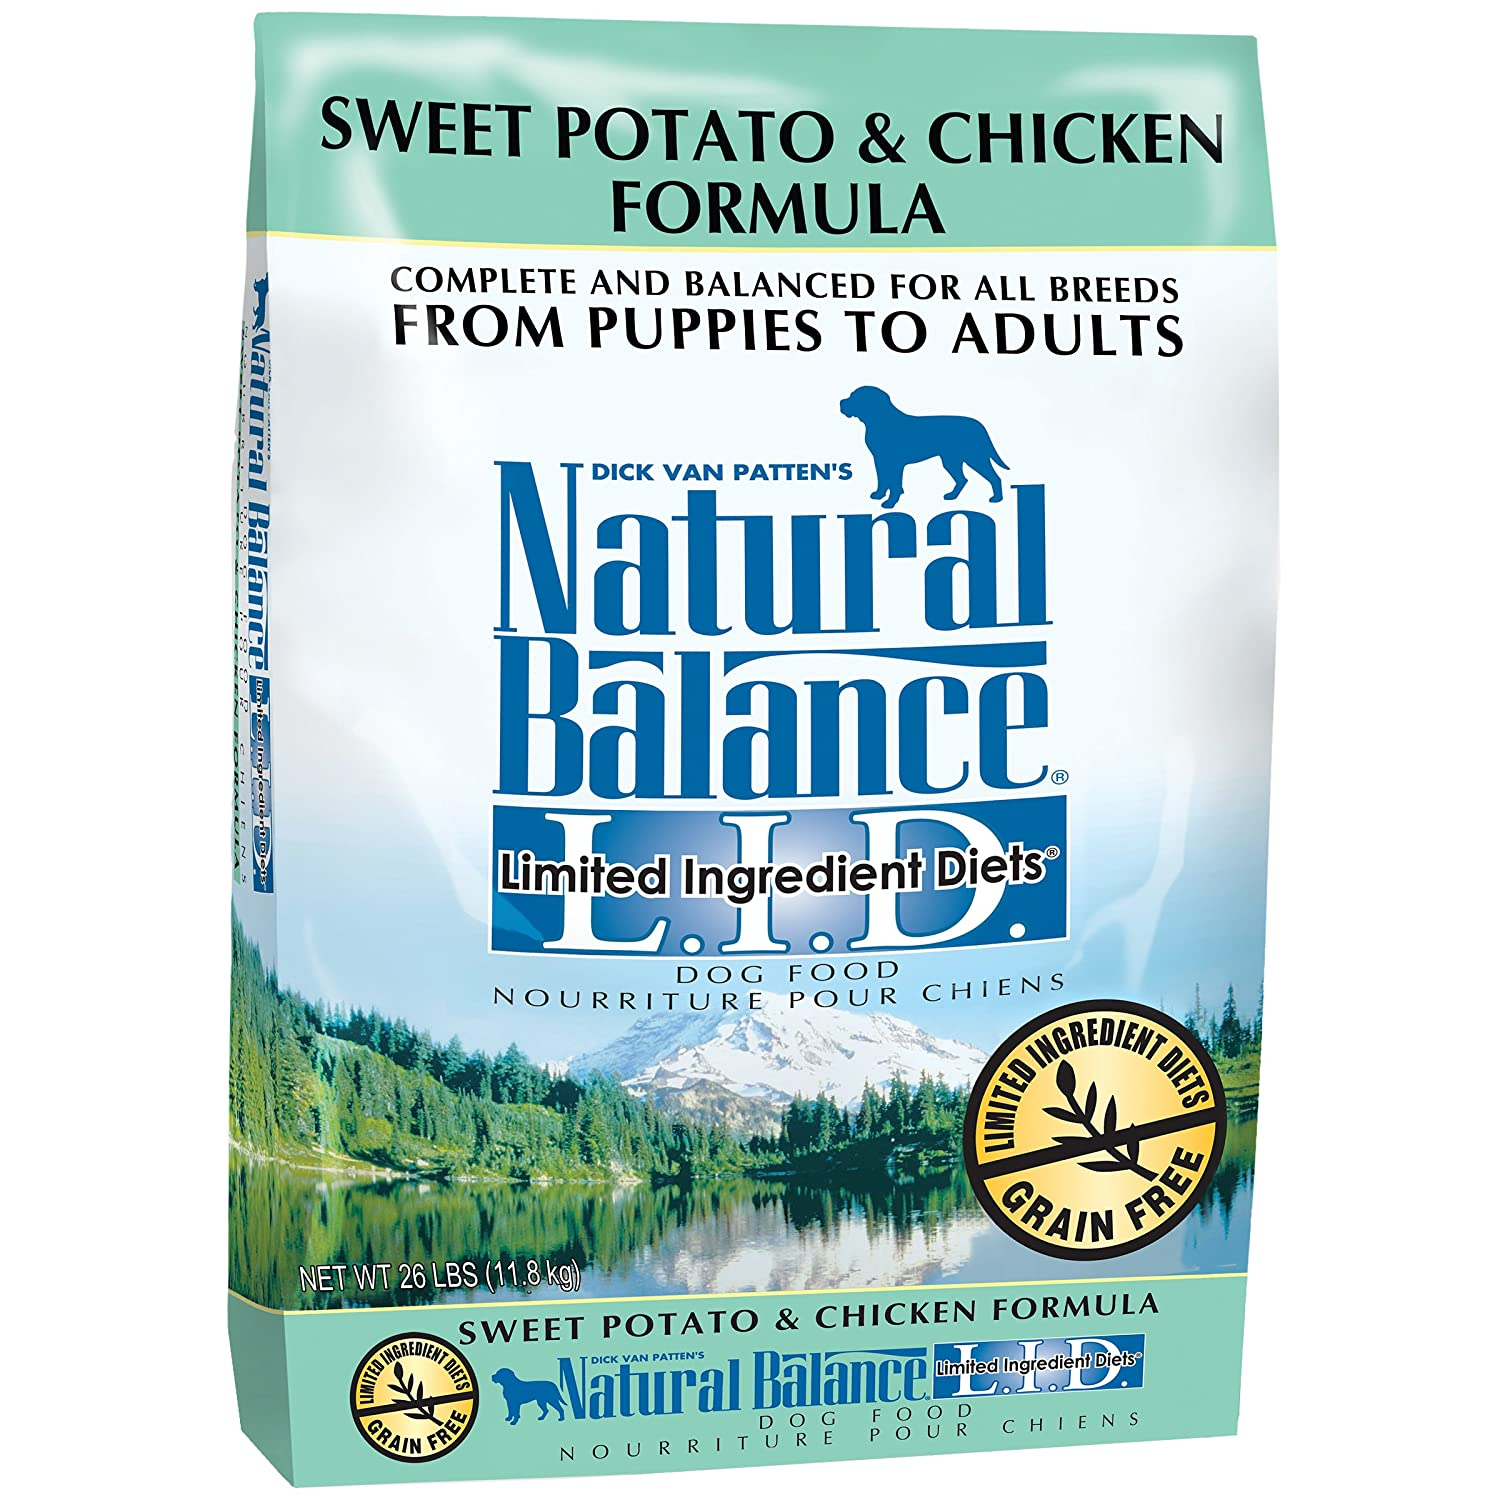 Natural Balance Limited Ingredient Diets Dry Dog Food – Chicken Sweet Potato Formula